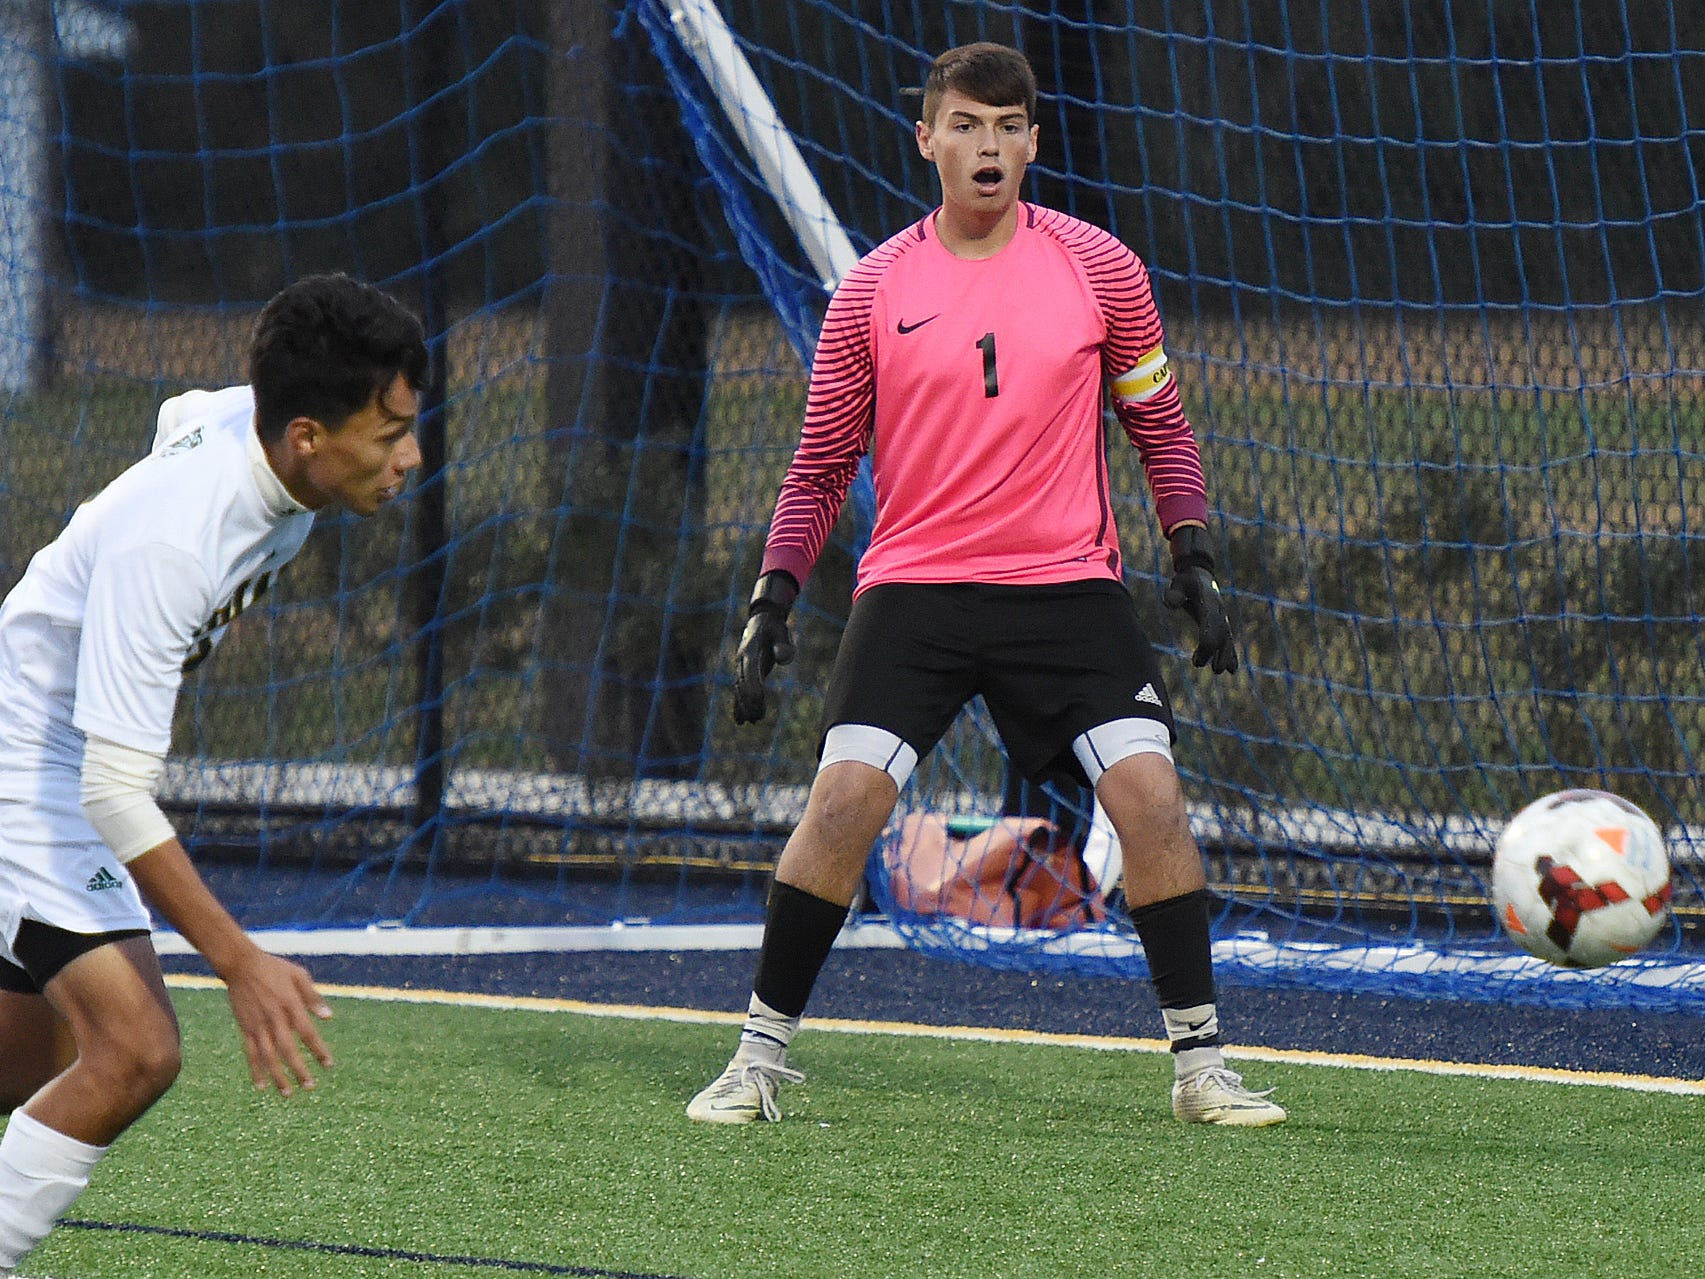 Indian River goalkeeper Zachary Neal watches as the ball goes past during the game at Sussex Academy on Oct. 25, 2018.